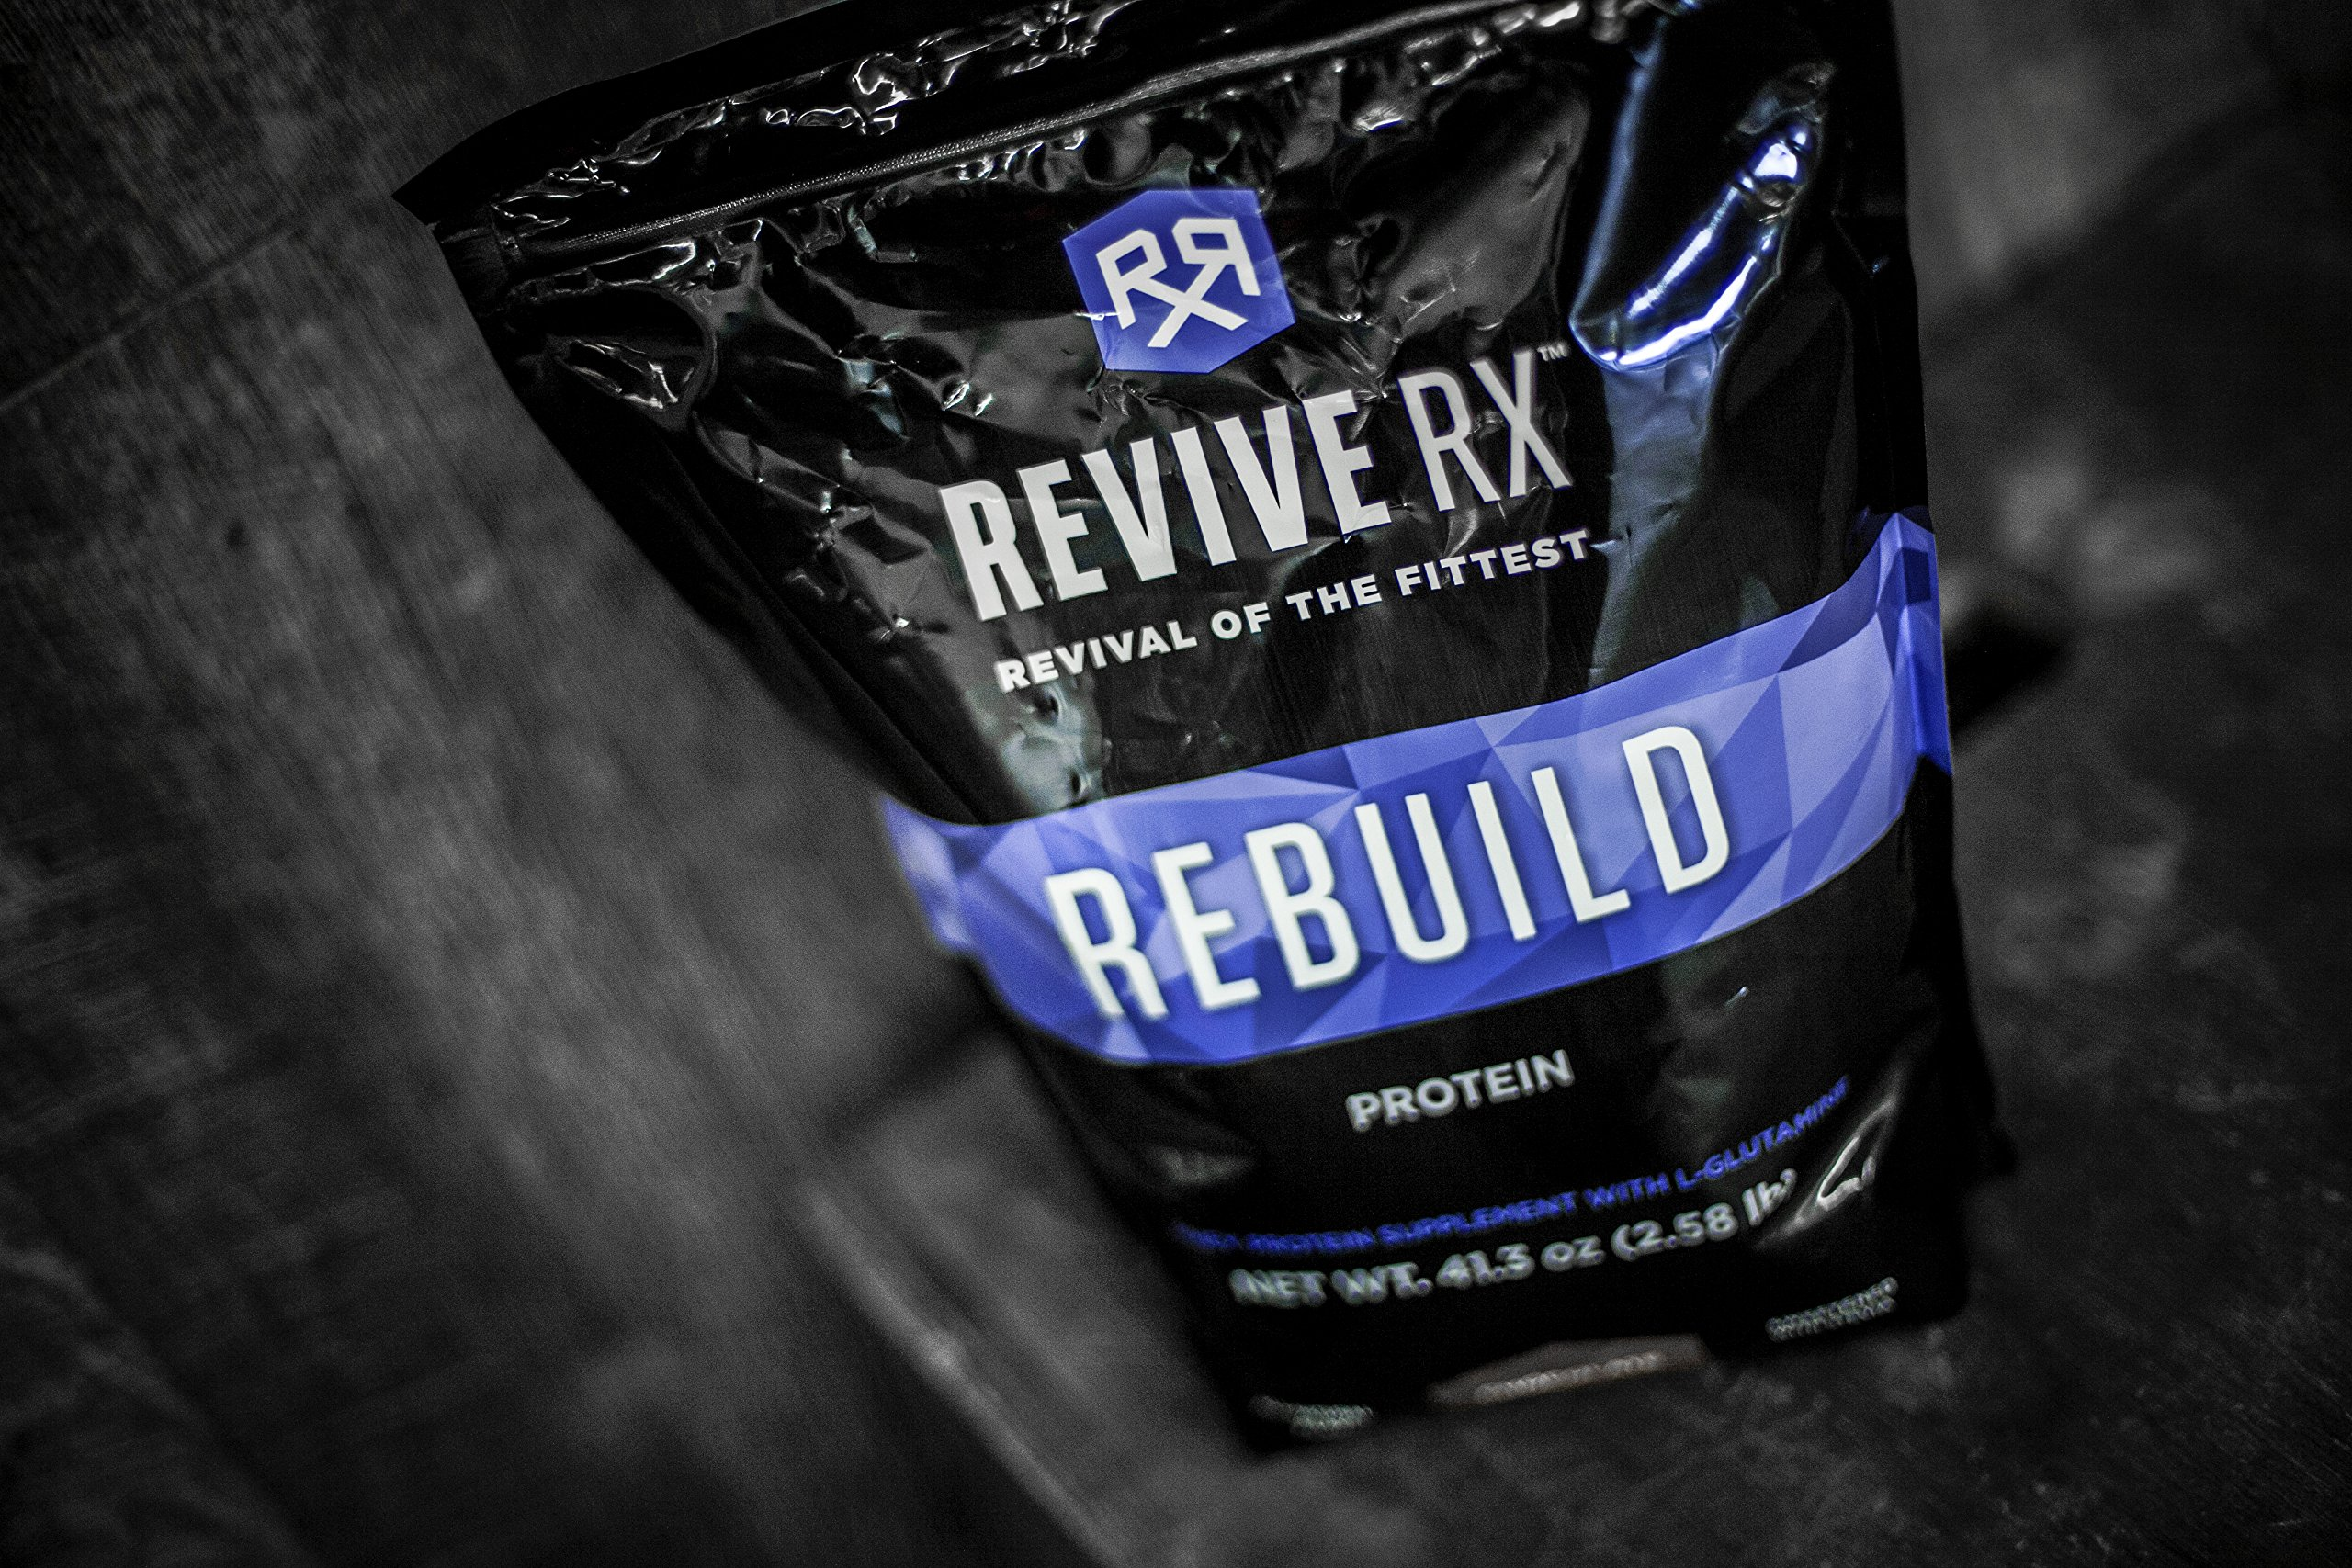 Revive Rx Rebuild Whey Protein Isolate and L-Glutamine Bulk 2.58lbs (Chocolate)